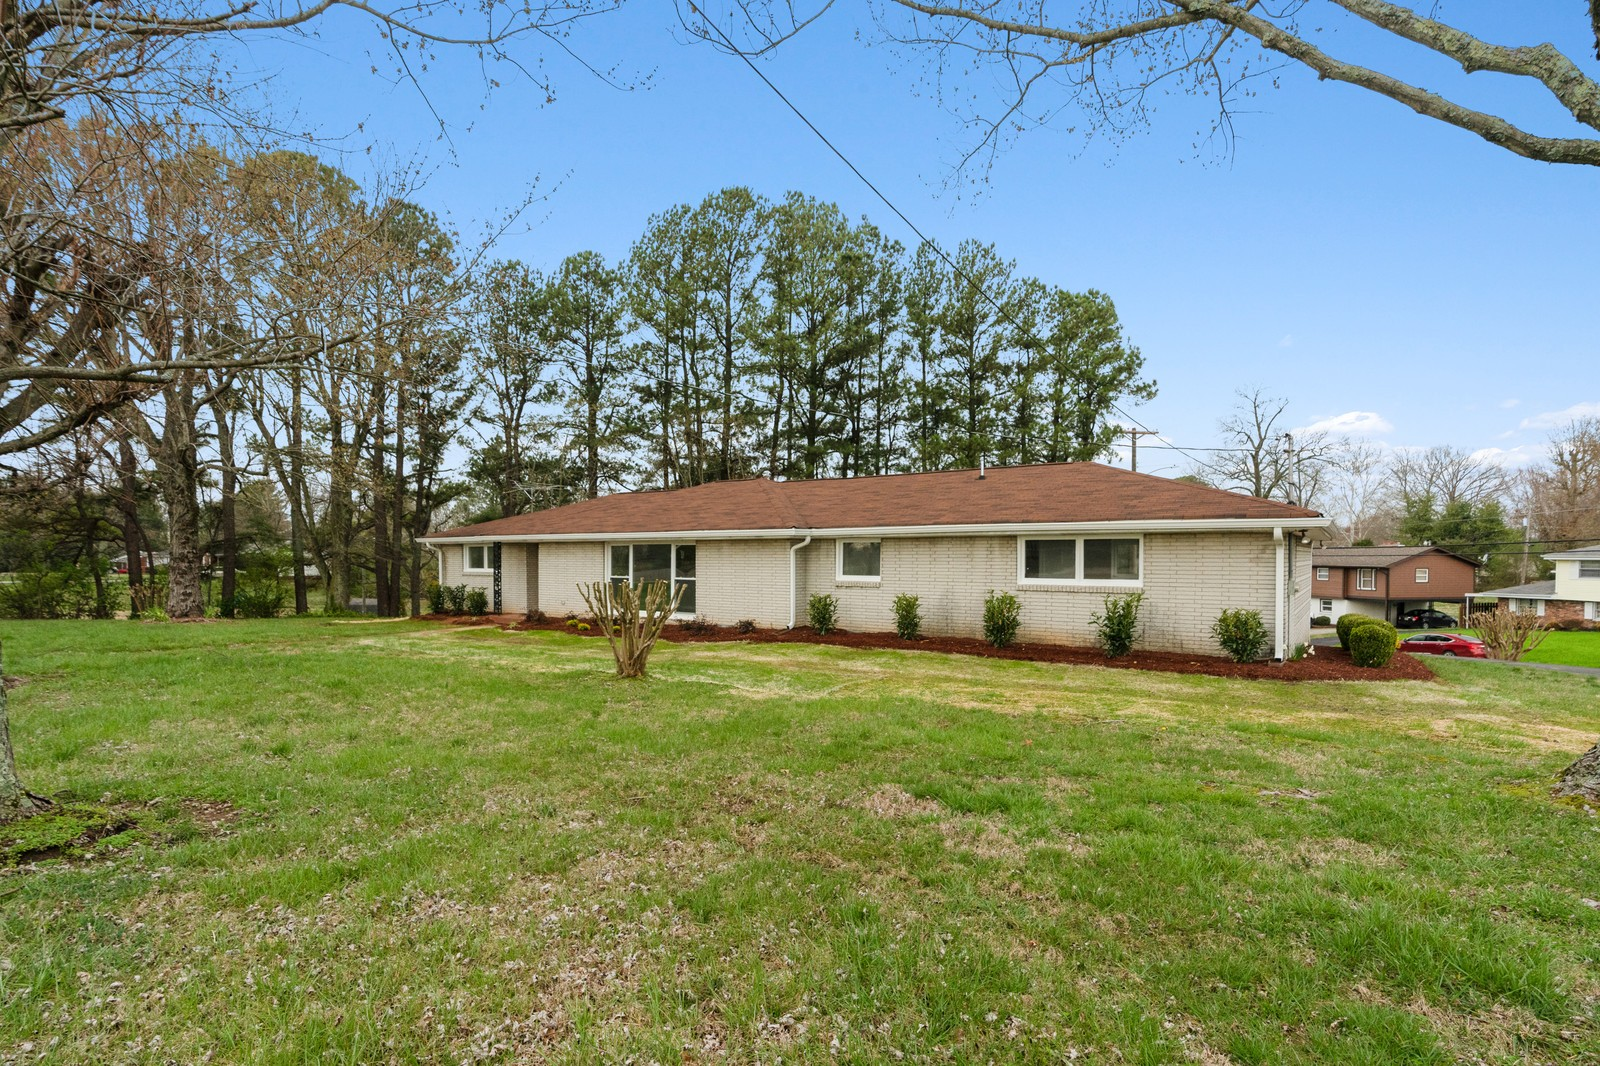 1401 5th Ave, W Property Photo - Springfield, TN real estate listing